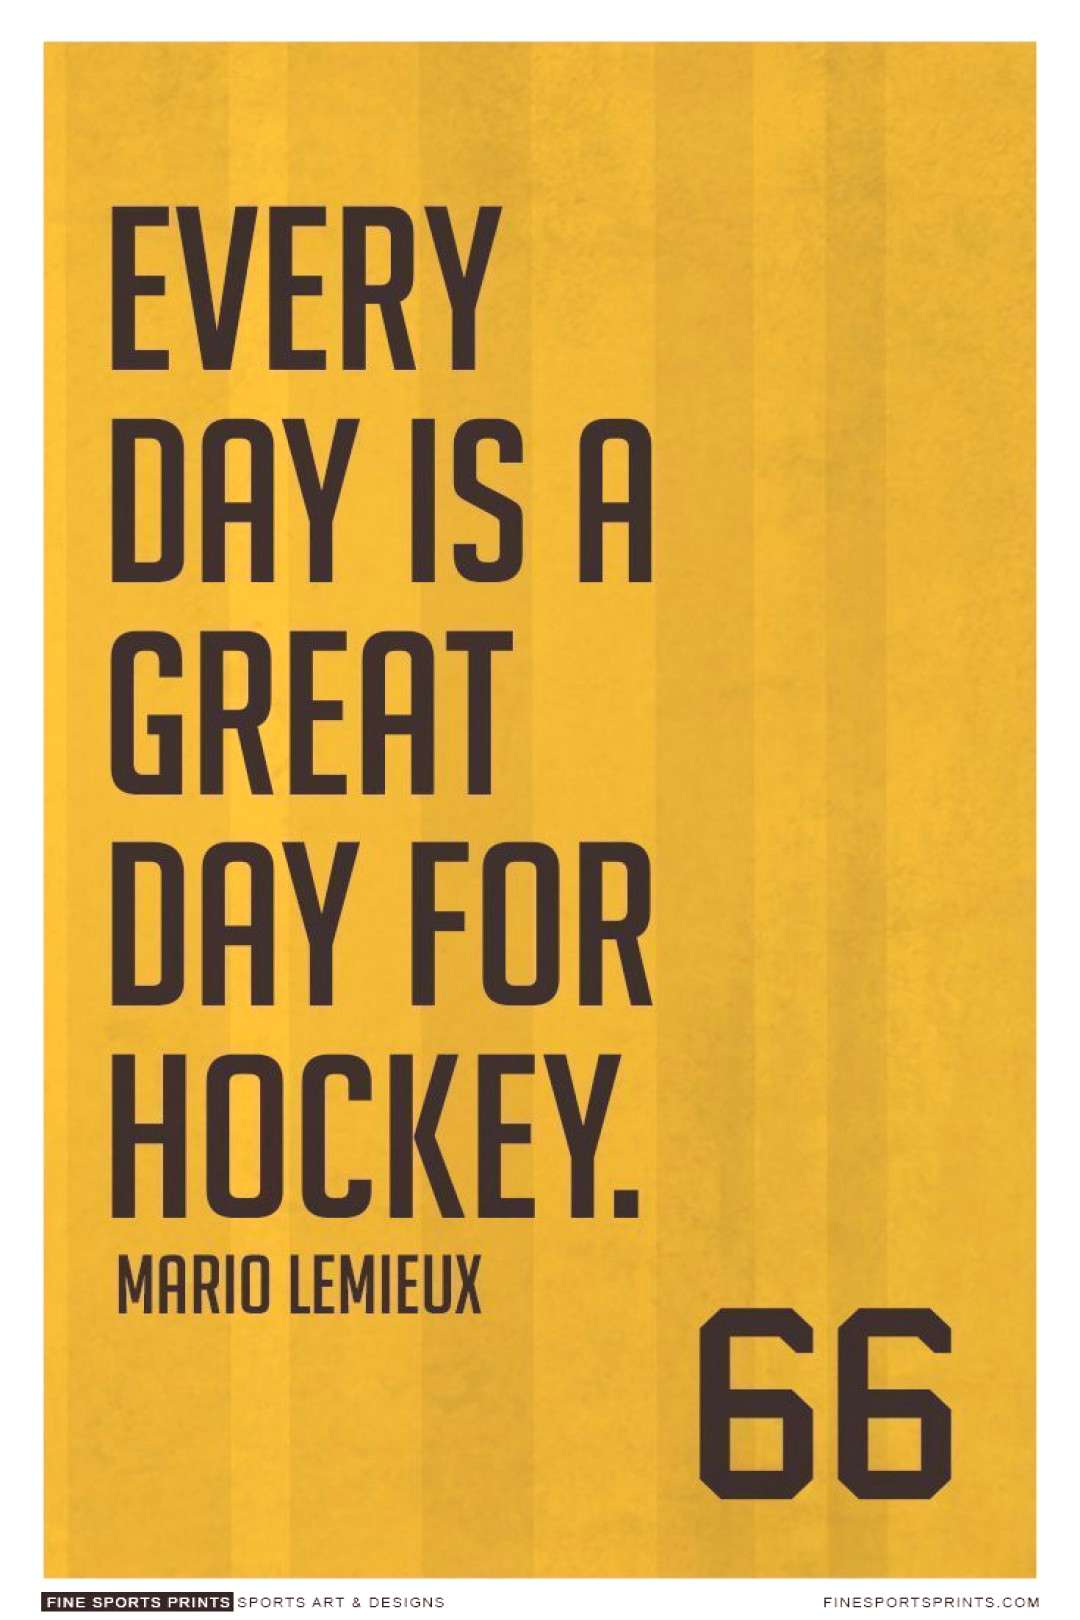 European football  pittsburgh penguins quotes, pittsburgh penguins valentines, pittsburgh penguin